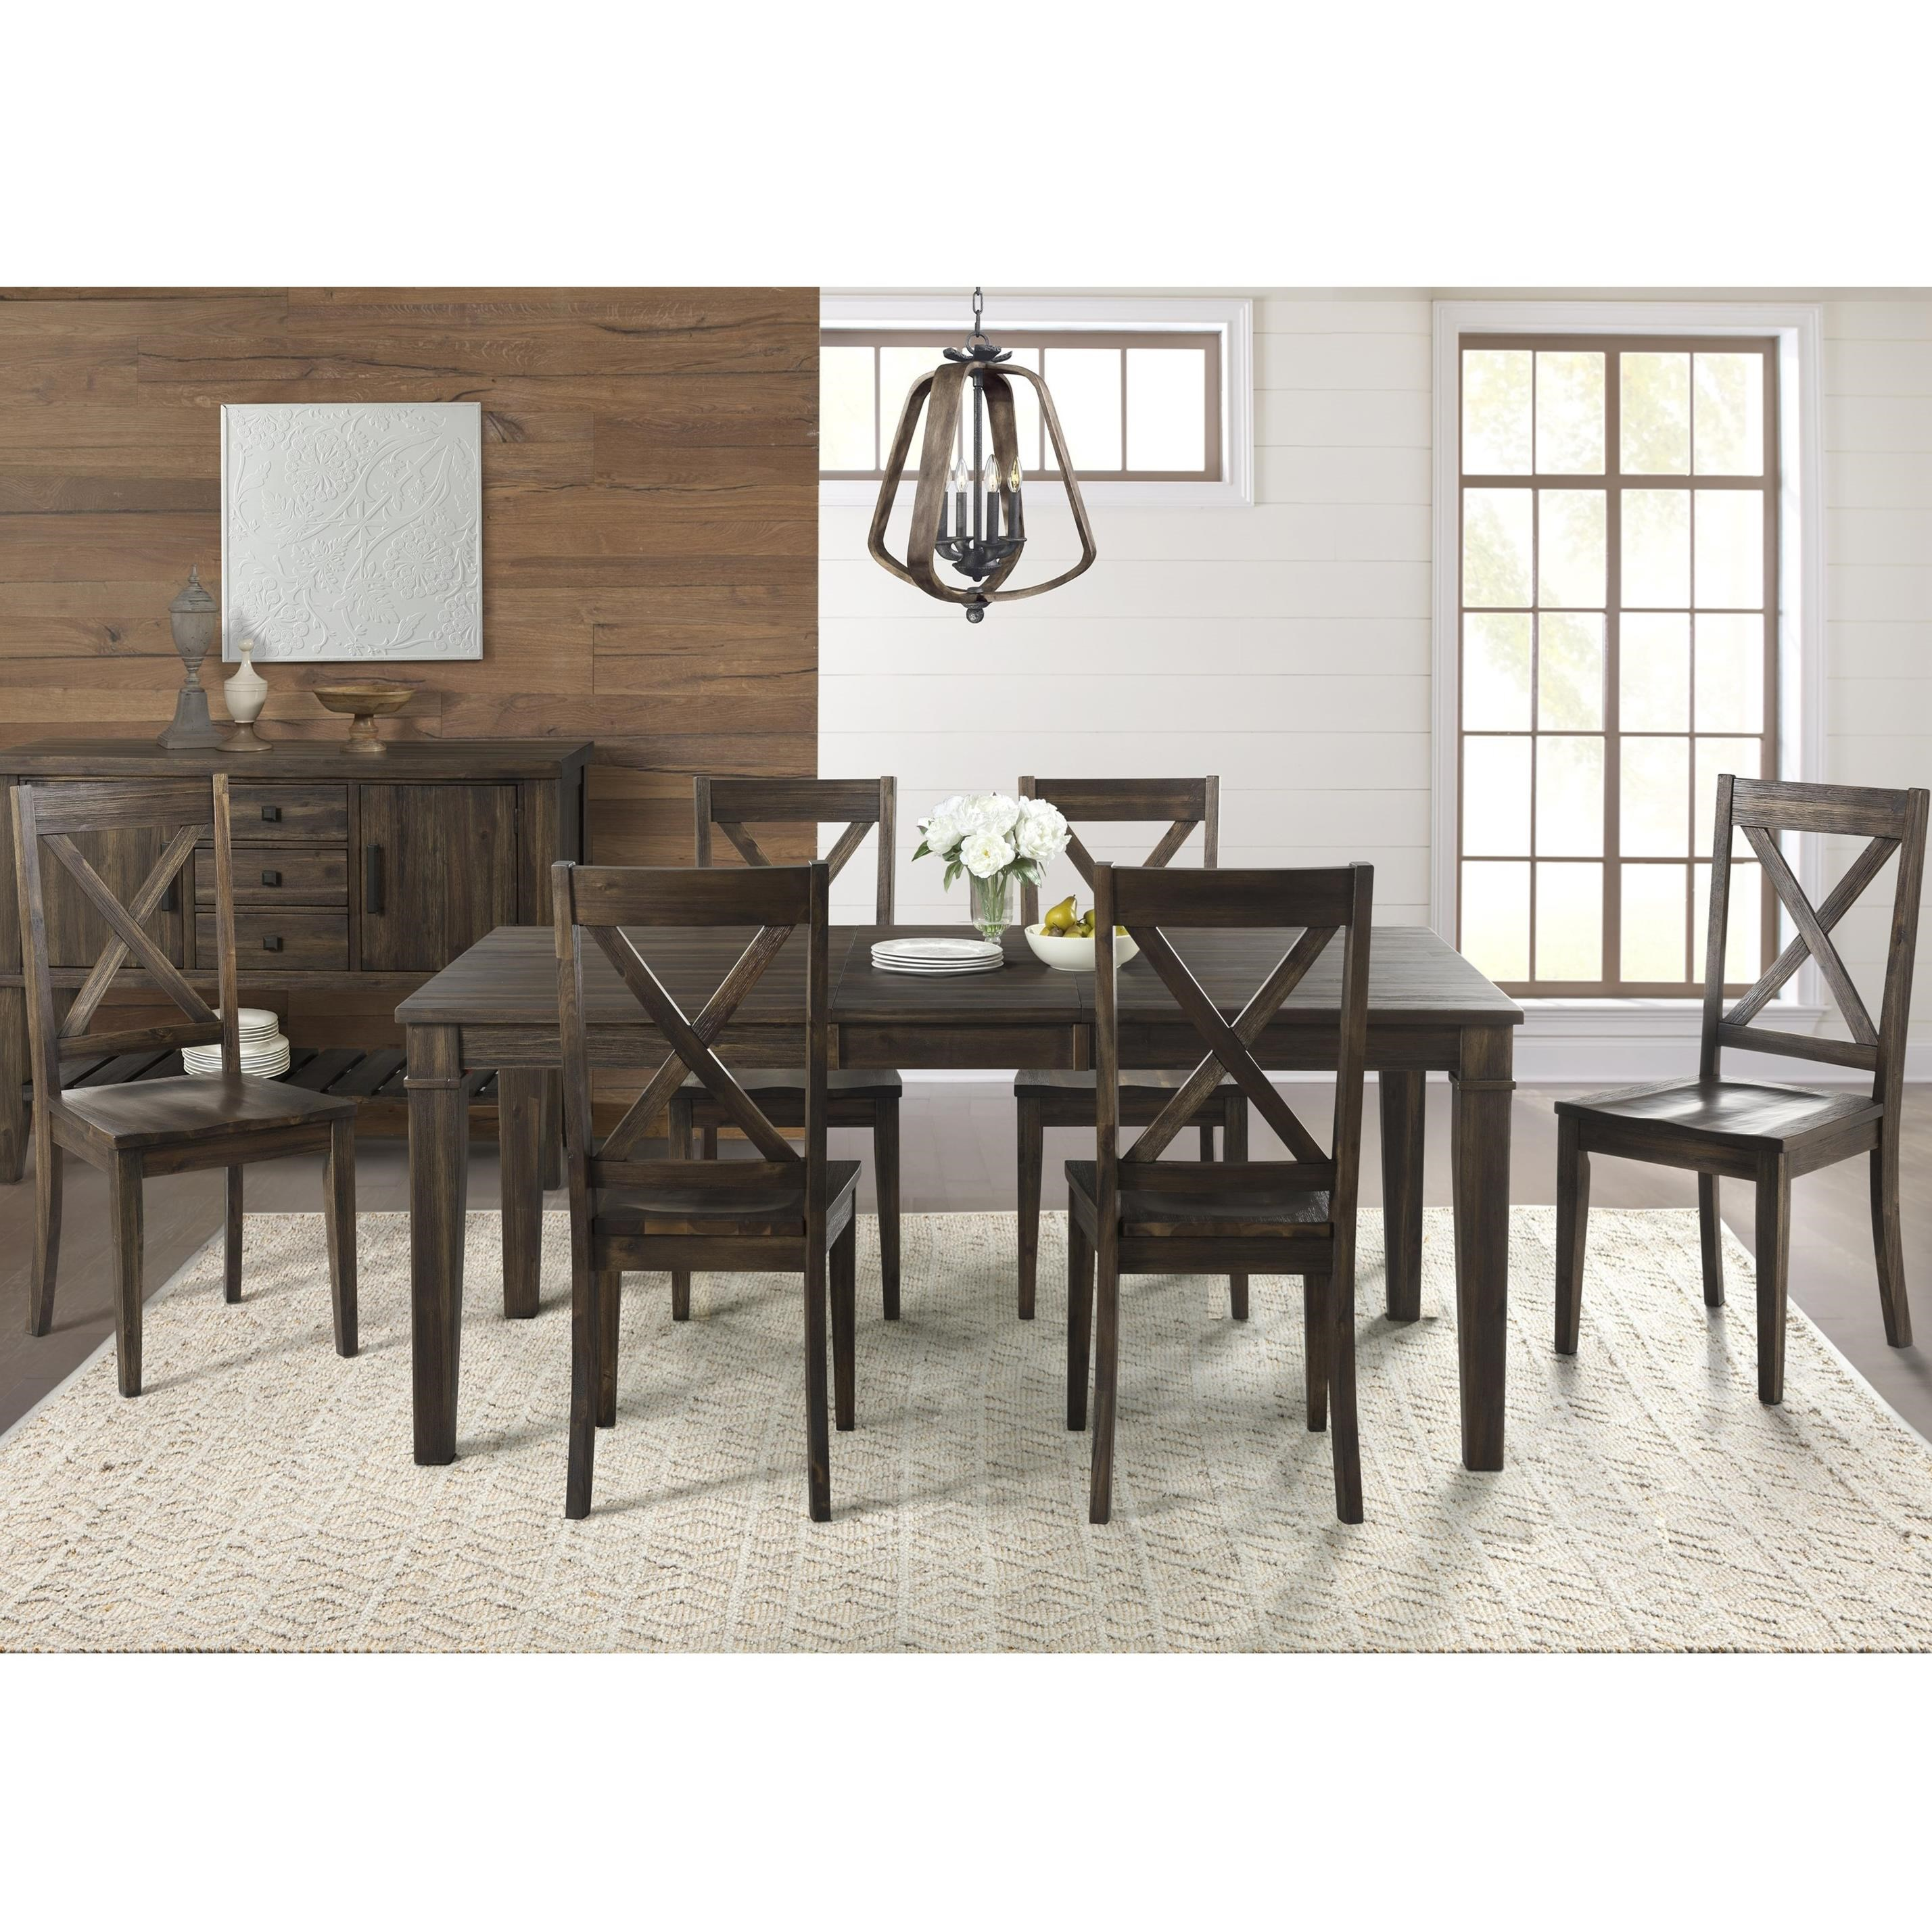 Huron Transitional Table and Chair Set by A-A at Walker's Furniture